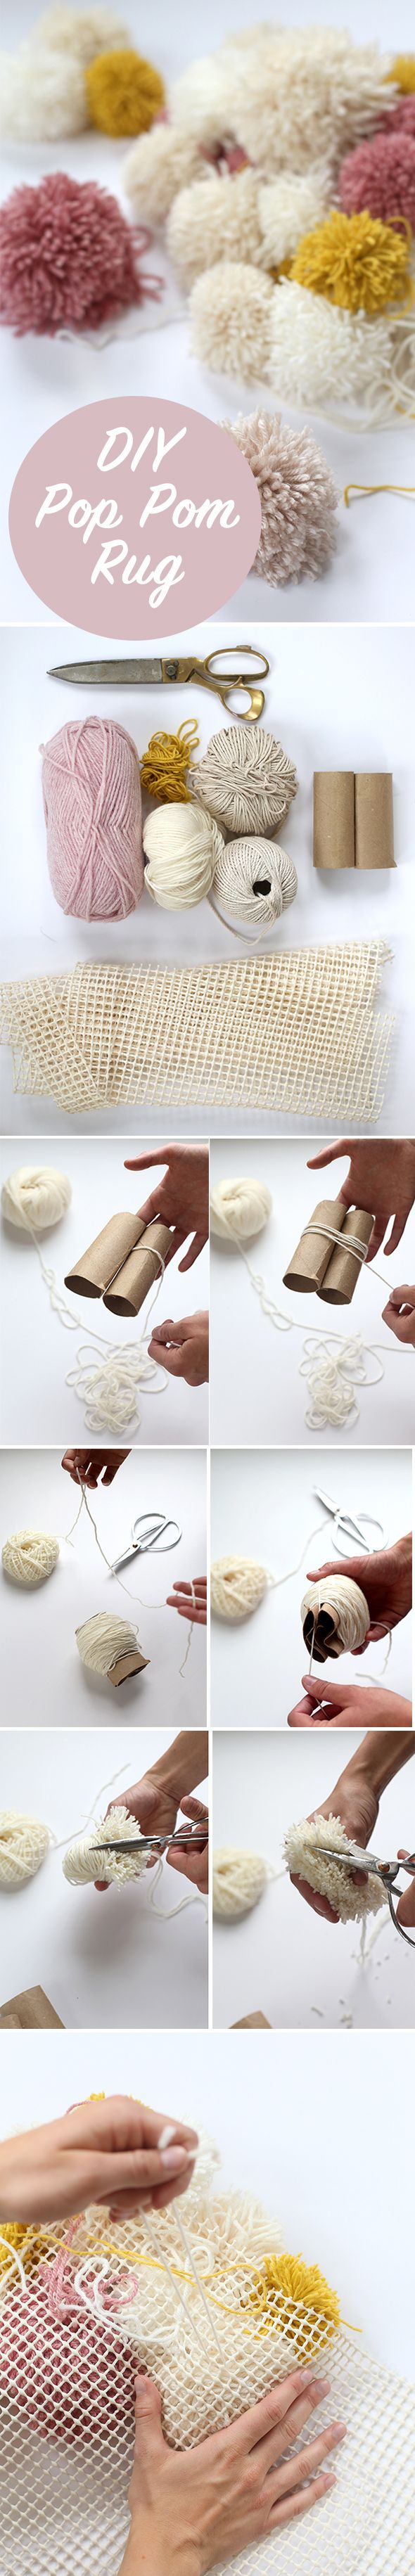 DIY Easy Pom Pom Rug | Cozy DIY Projects to Keep You Warm This Winter